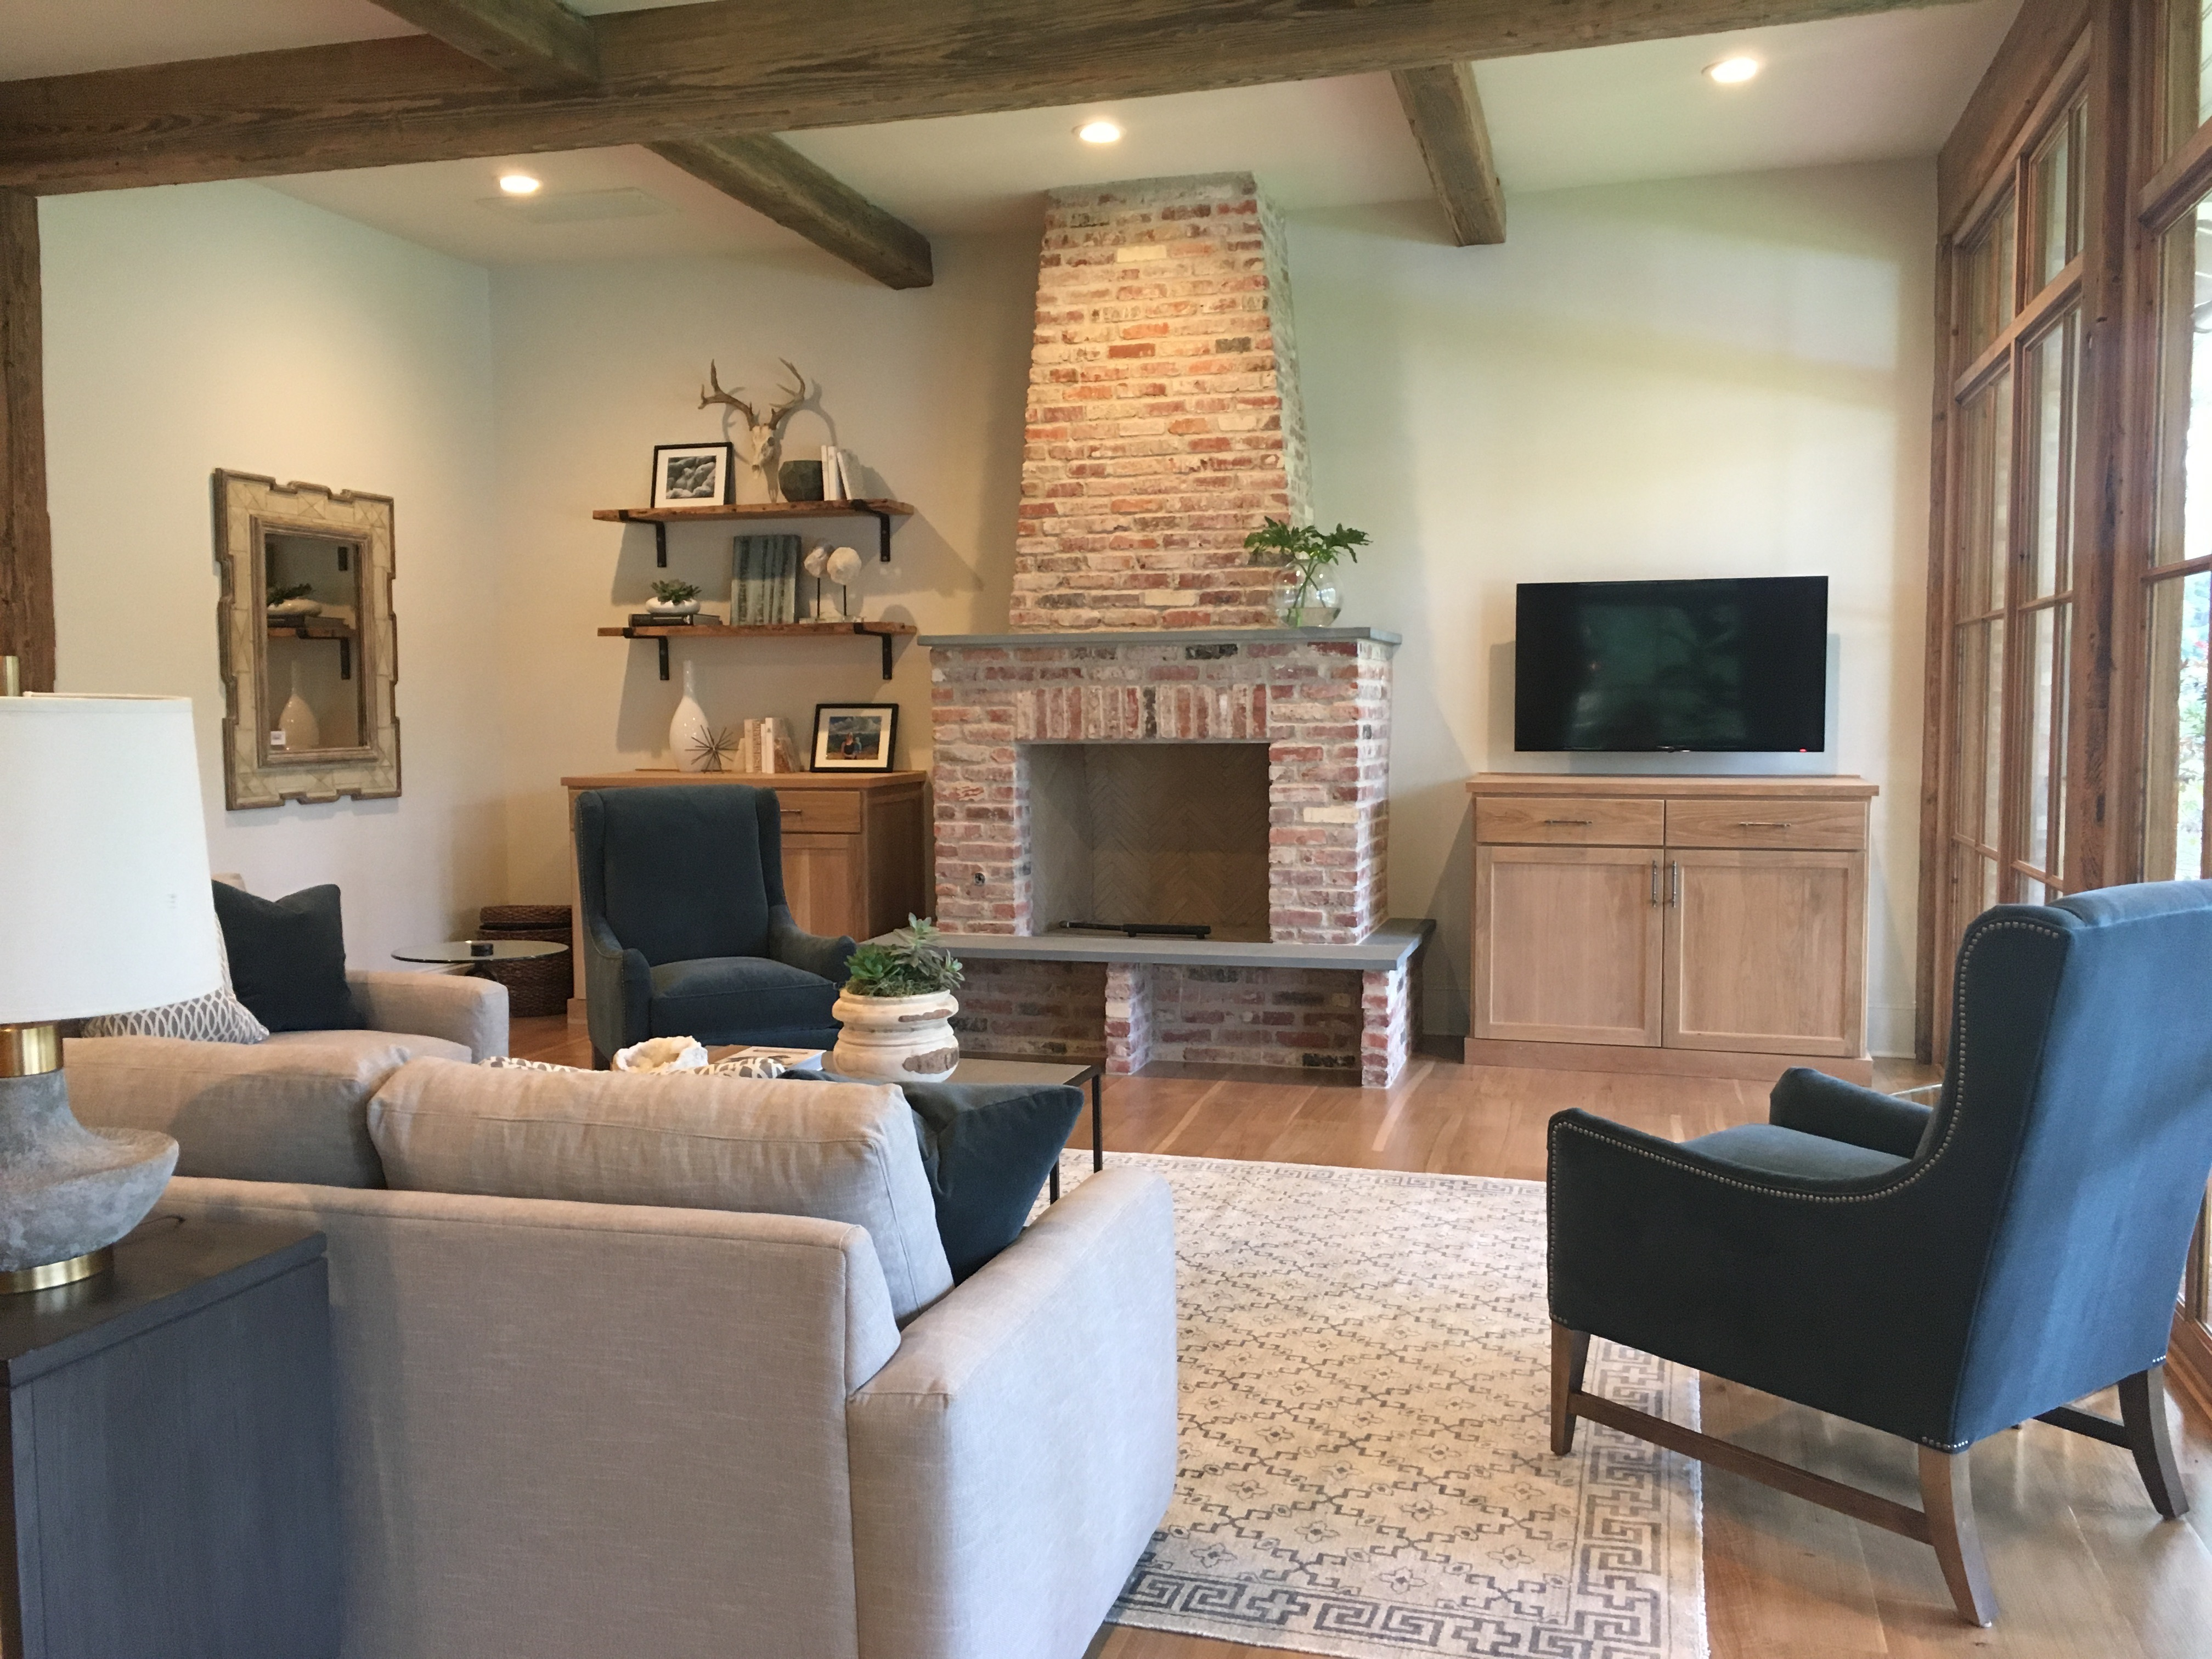 beamed ceiling brick fireplace simple decor